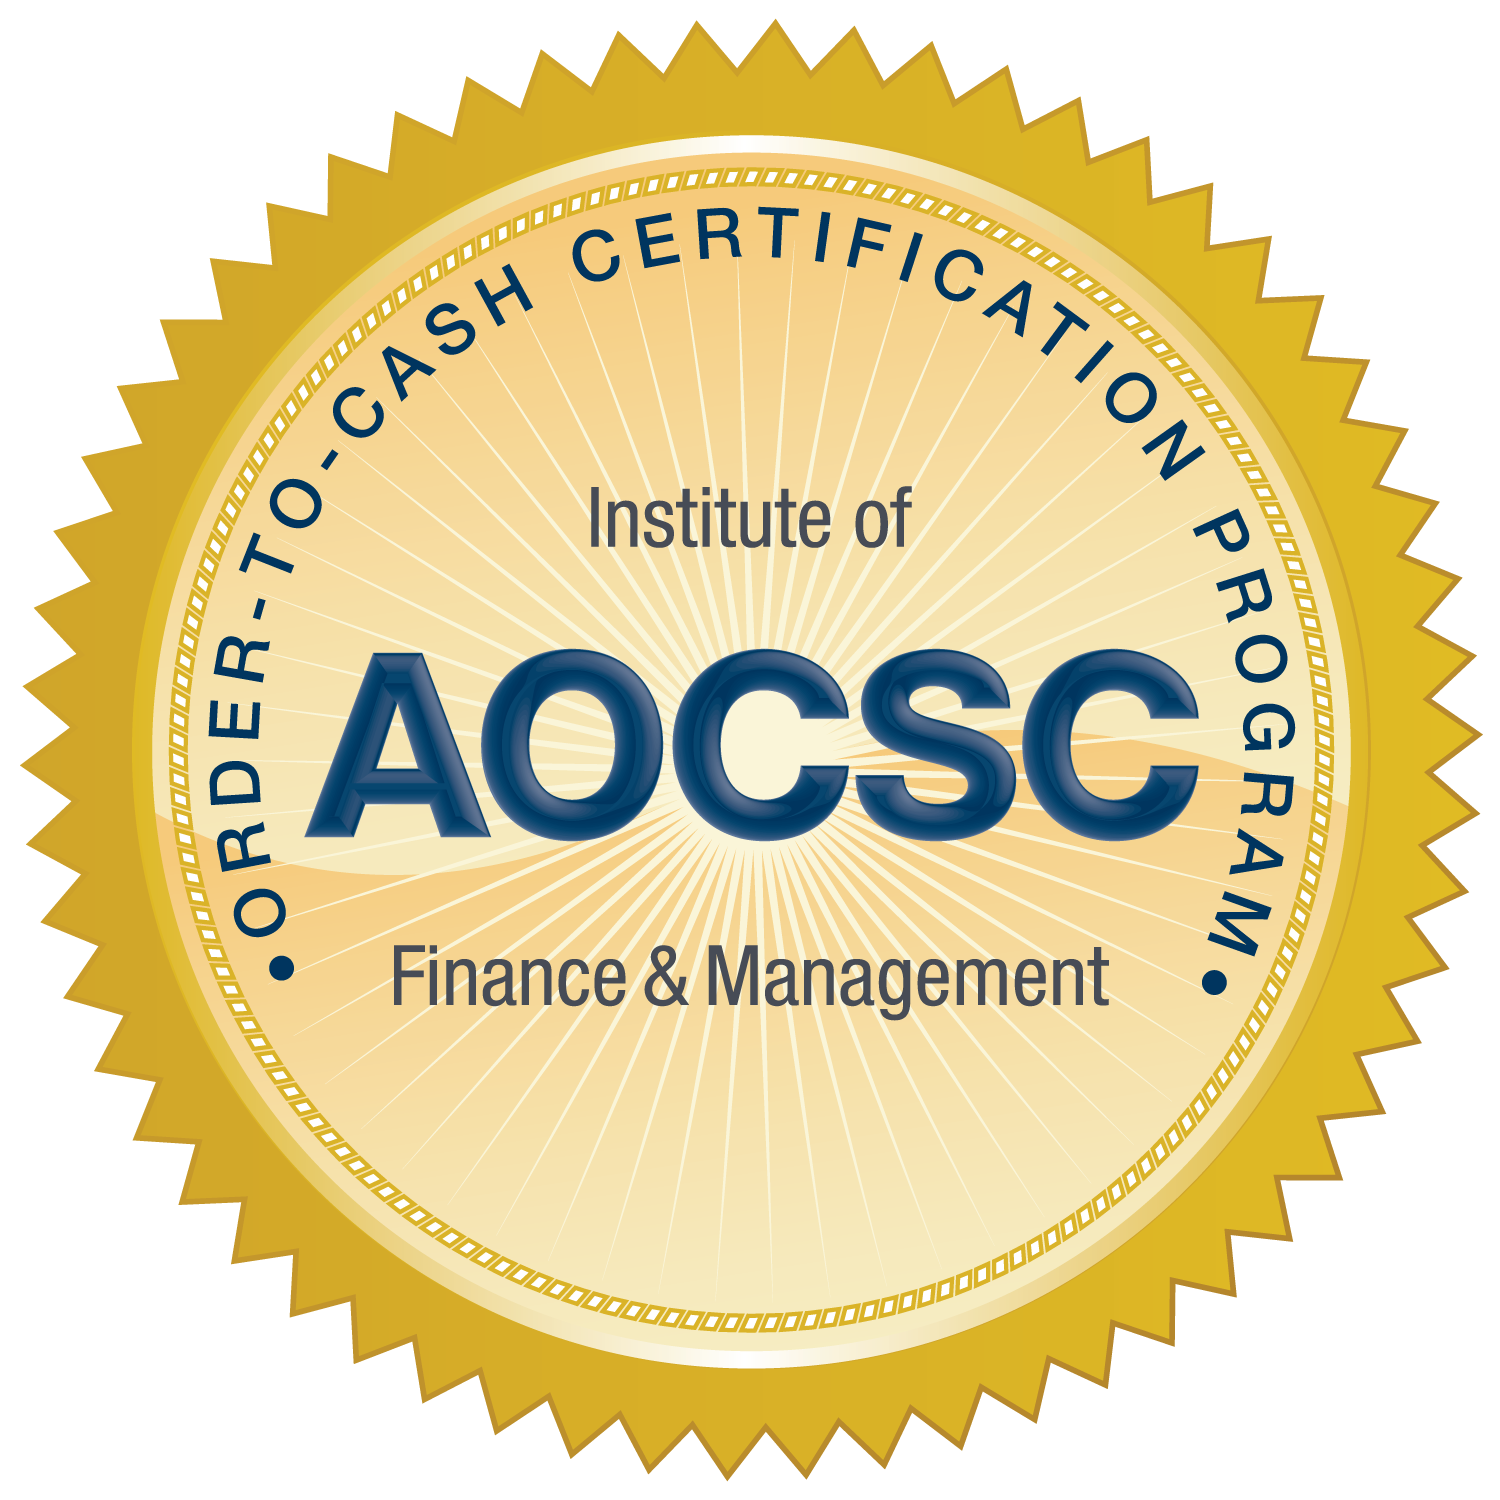 Order To Cash Solution Consultant Certification Accounts